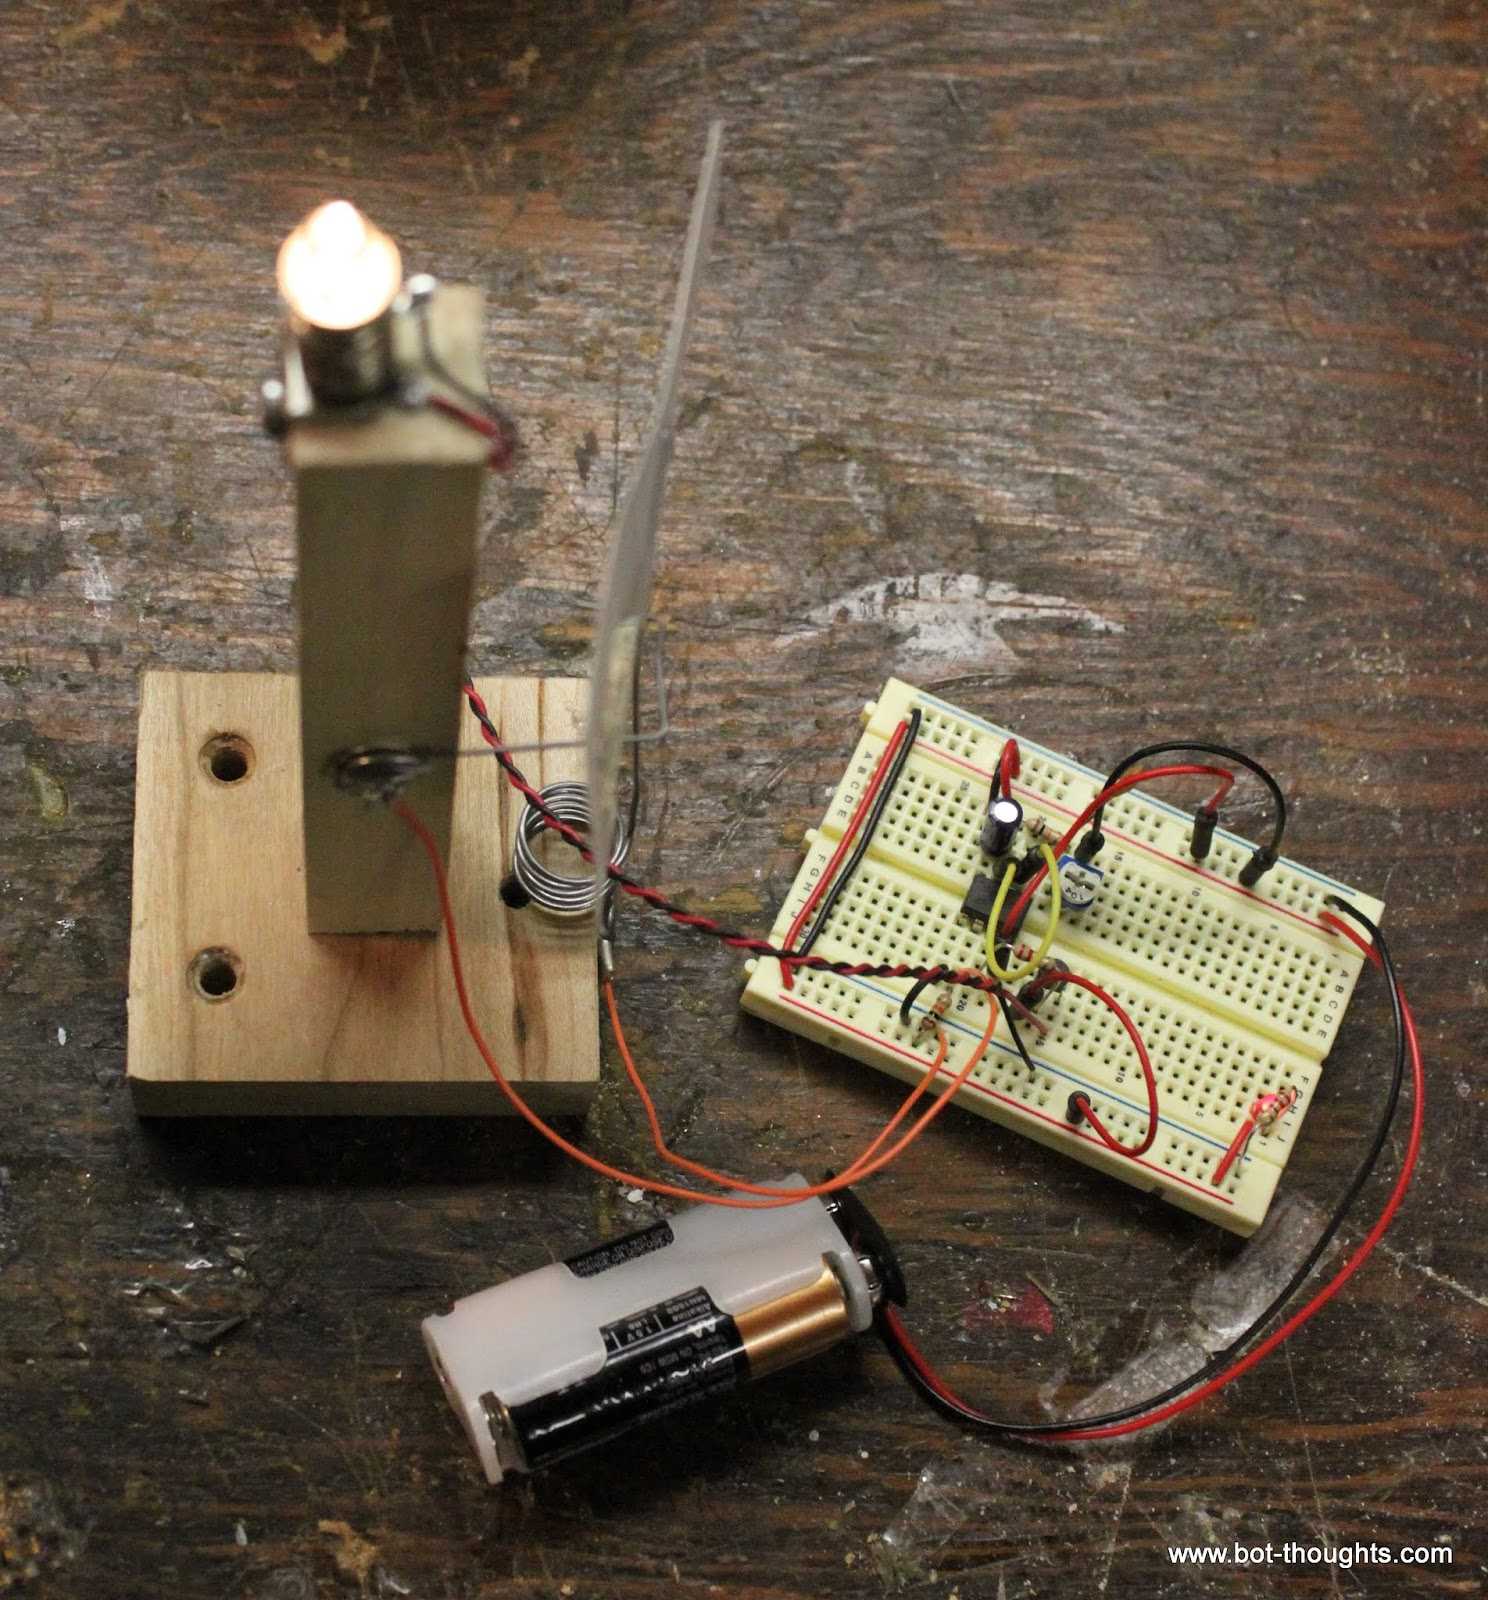 Bot Thoughts Electronic Candle With A 555 Timer Monostable Circuit Electrical Engineering Electronics Driving The Lamp